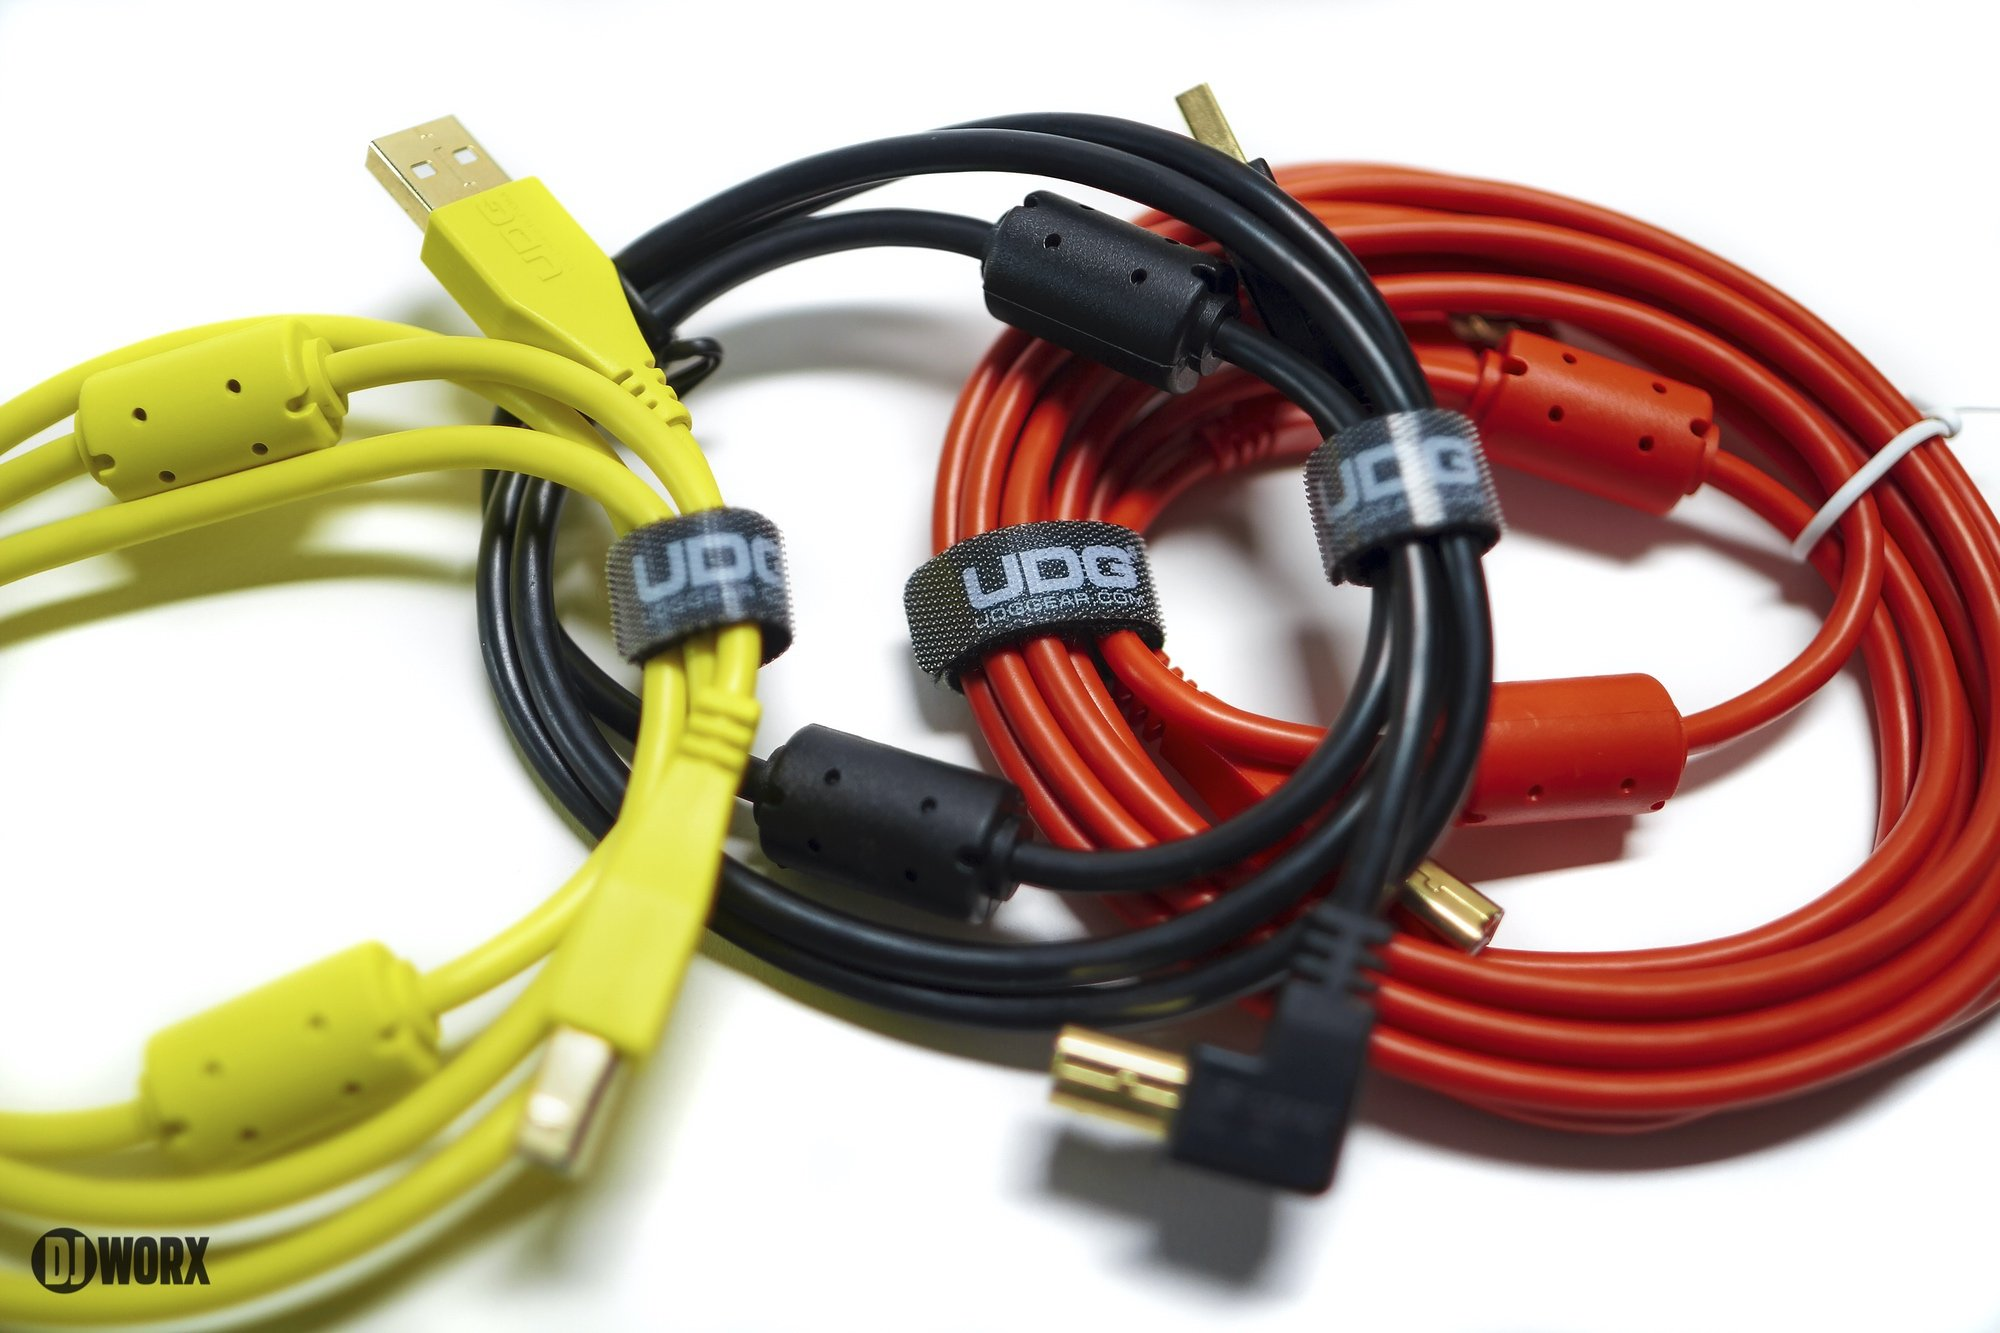 UDG USB cable review DJ Techtools Chroma Cables DJTT (1)